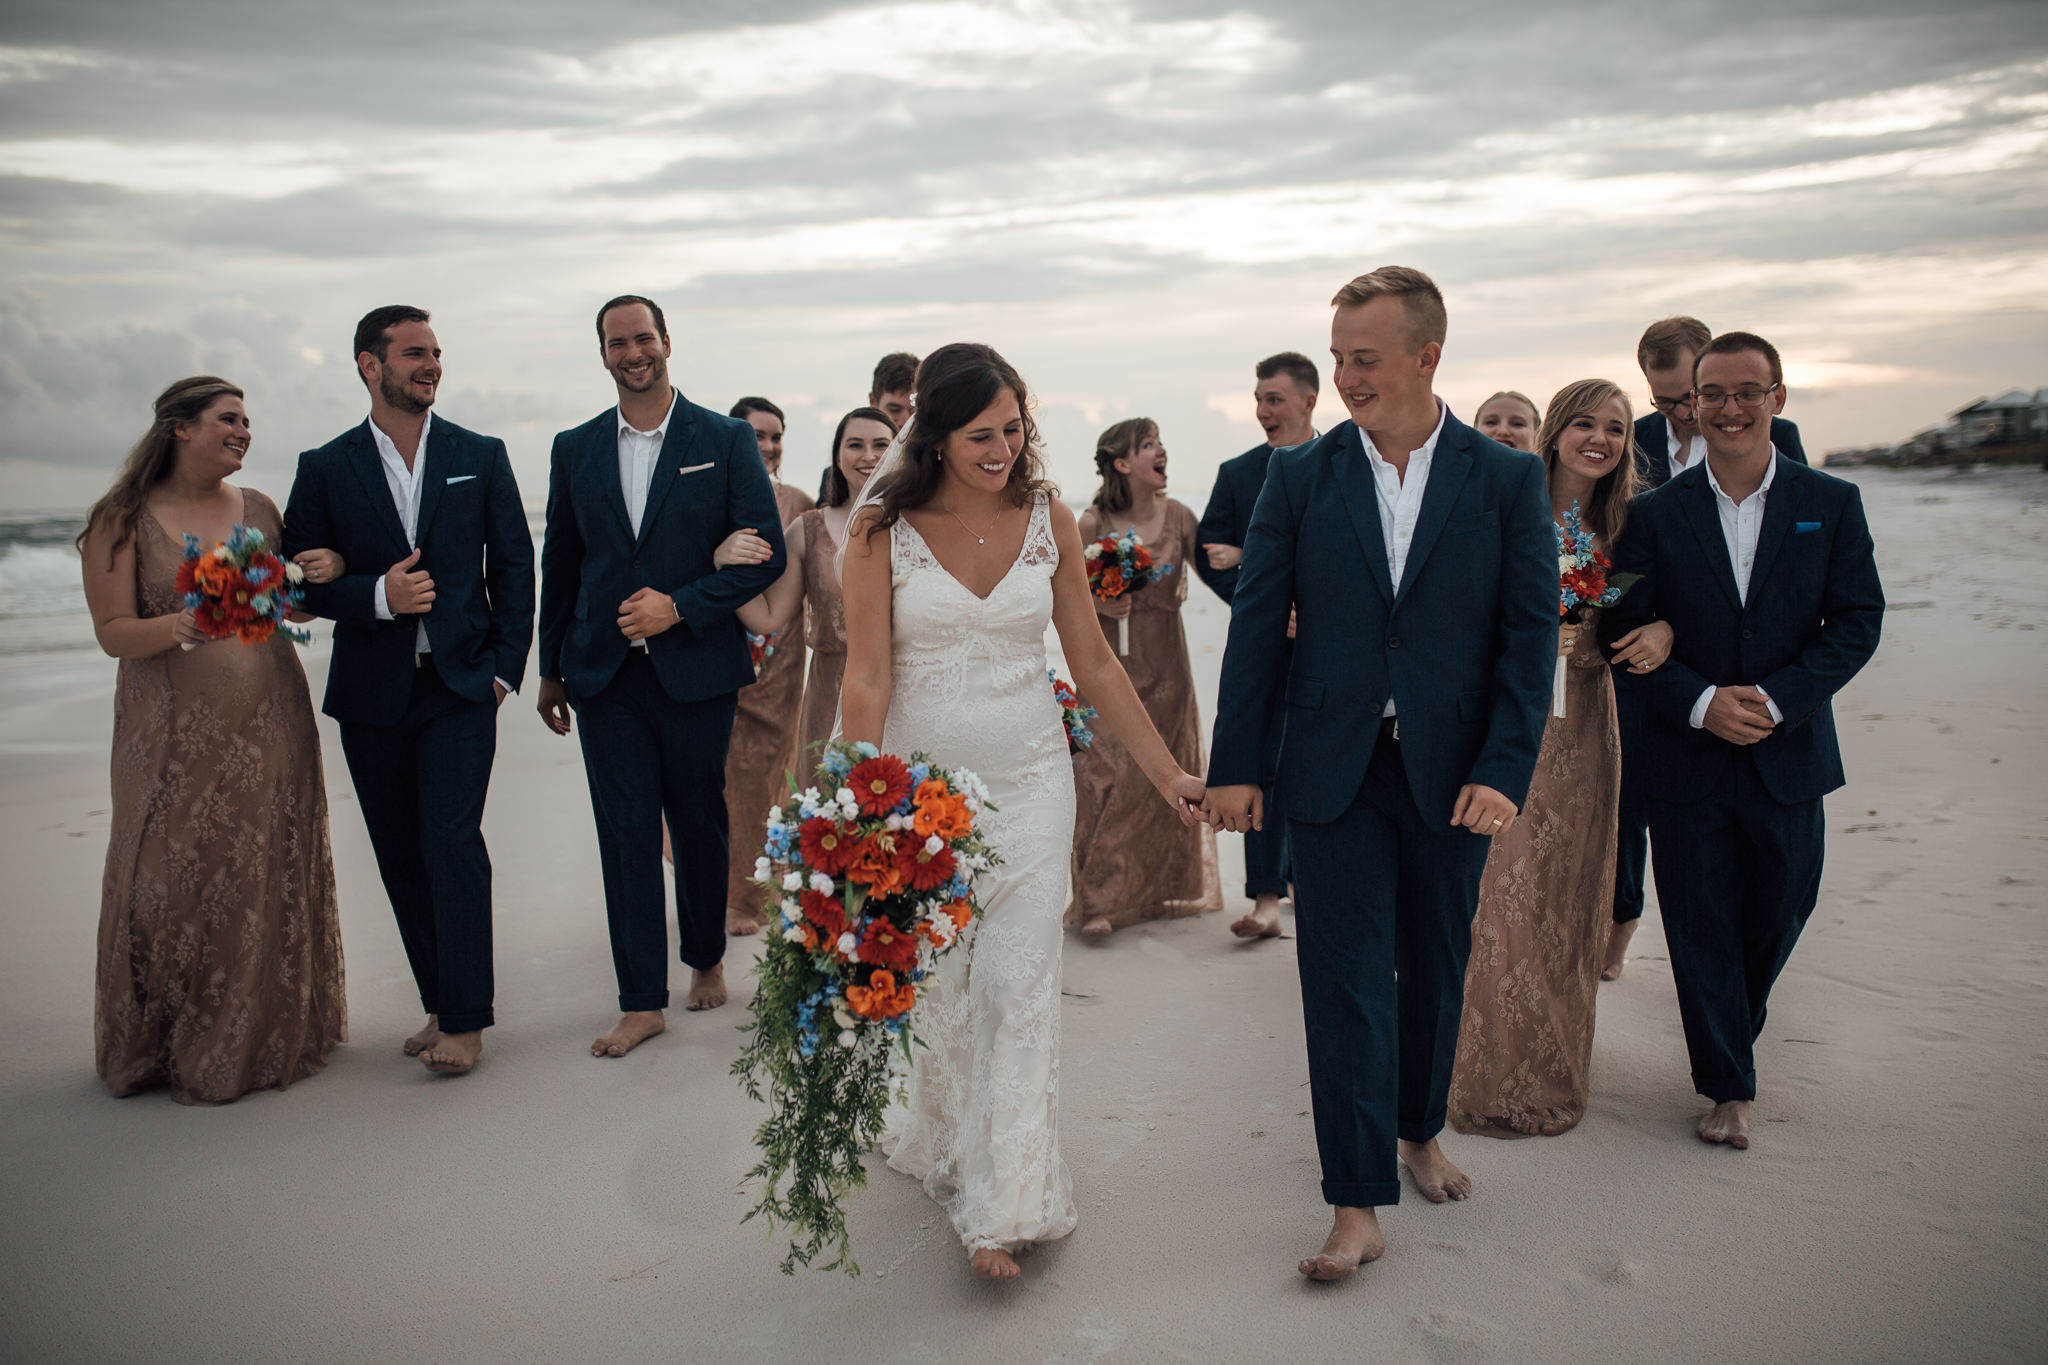 cassie-cook-photography-santa-rosa-beach-fl-wedding-farrar-wedding-beach-wedding-destination-wedding-16-2.jpg